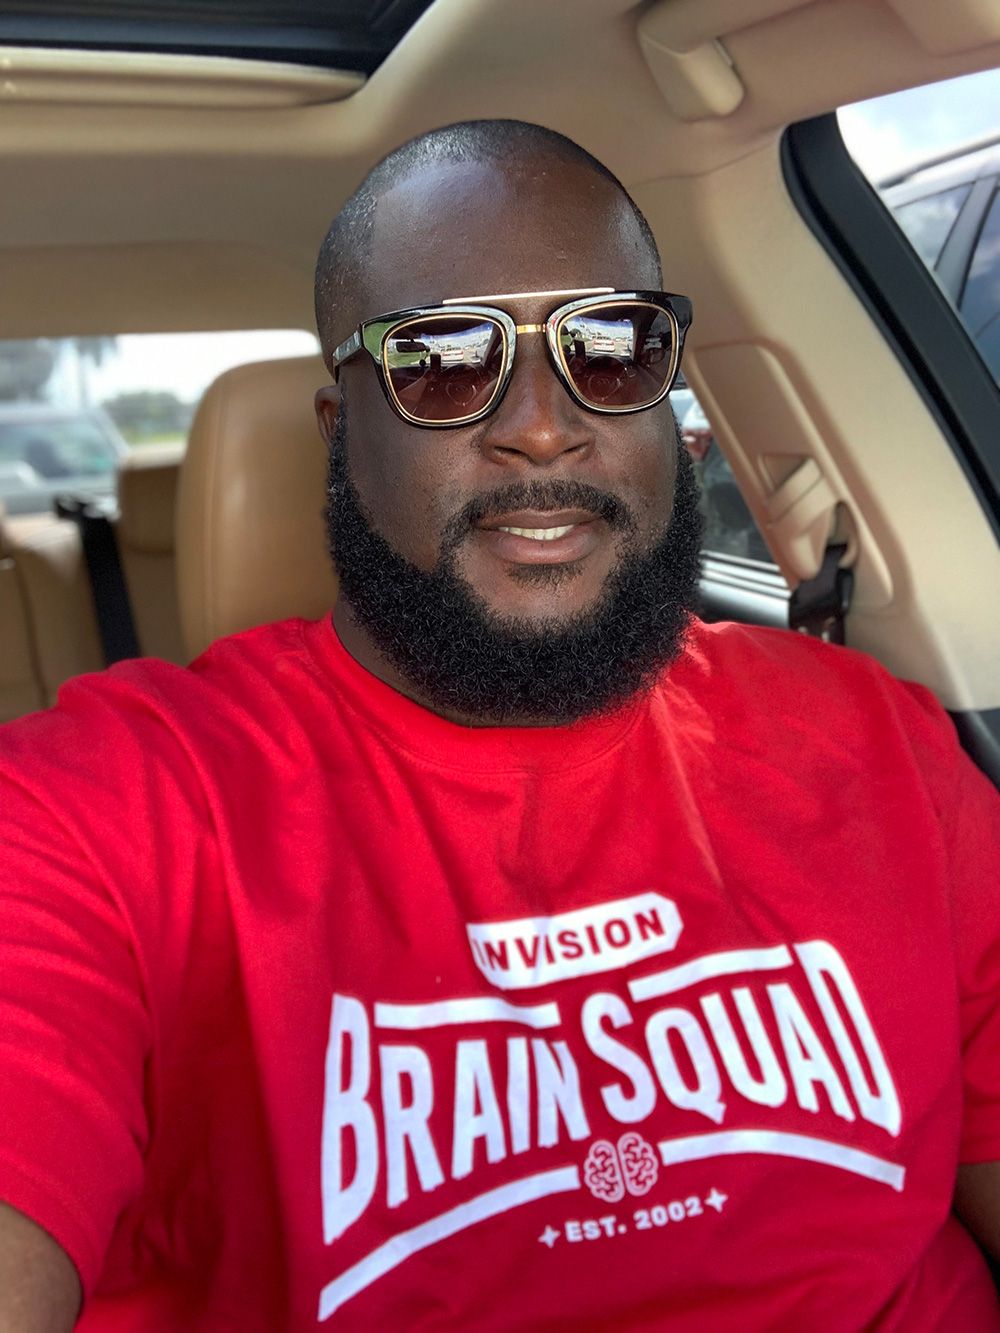 Florida Eye Doc Drives Around in Style   … and More Brain Squad Members in Their INVISION T-Shirts